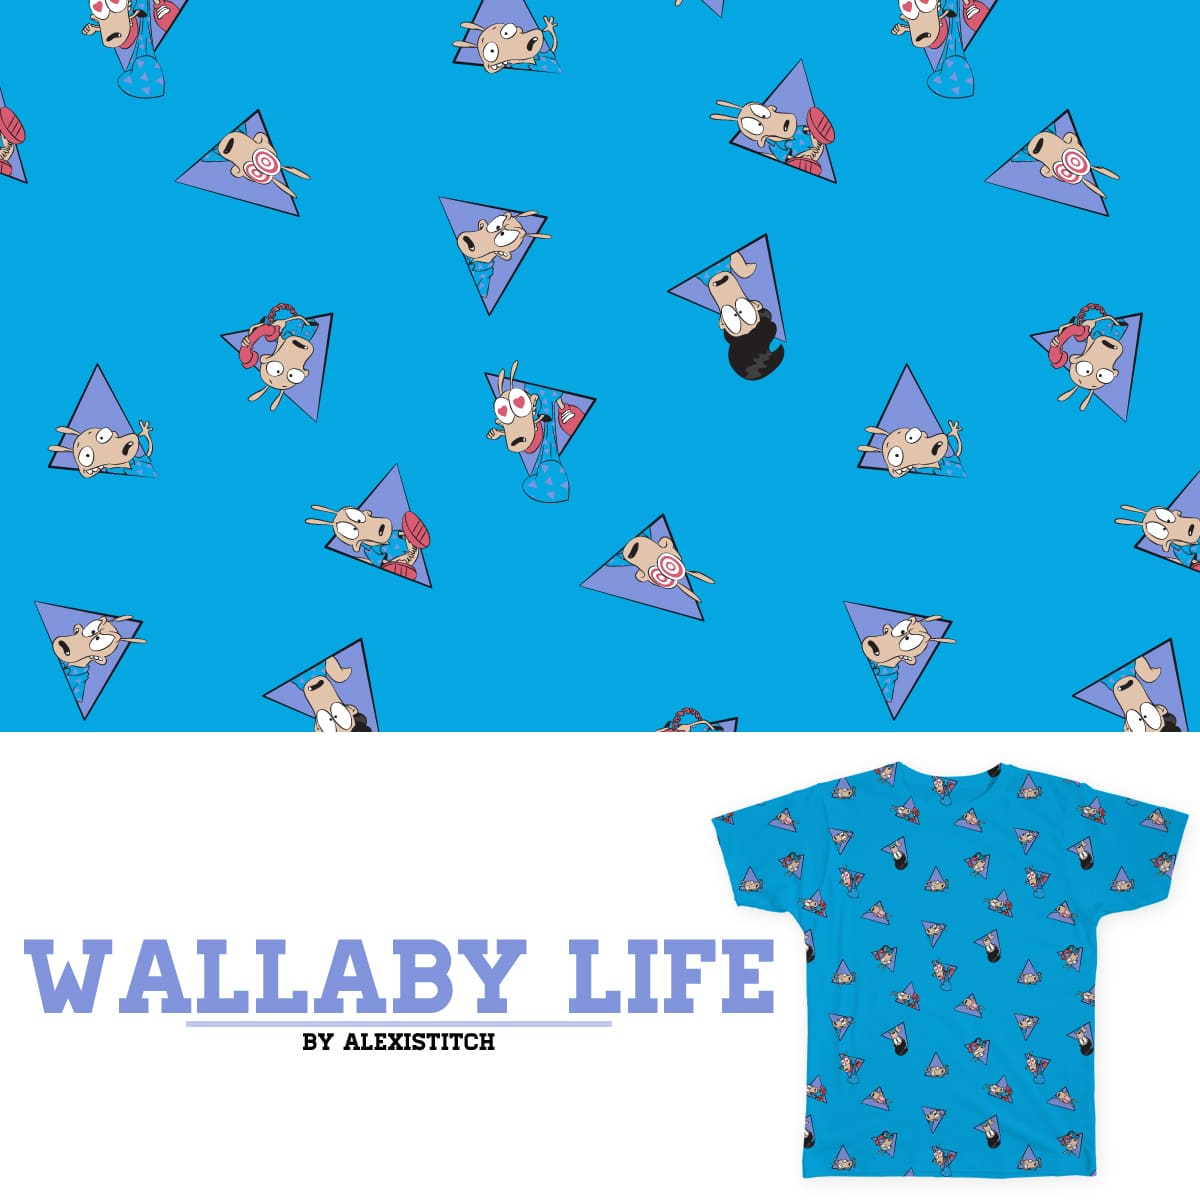 Wallaby Life by alexistitch on Threadless